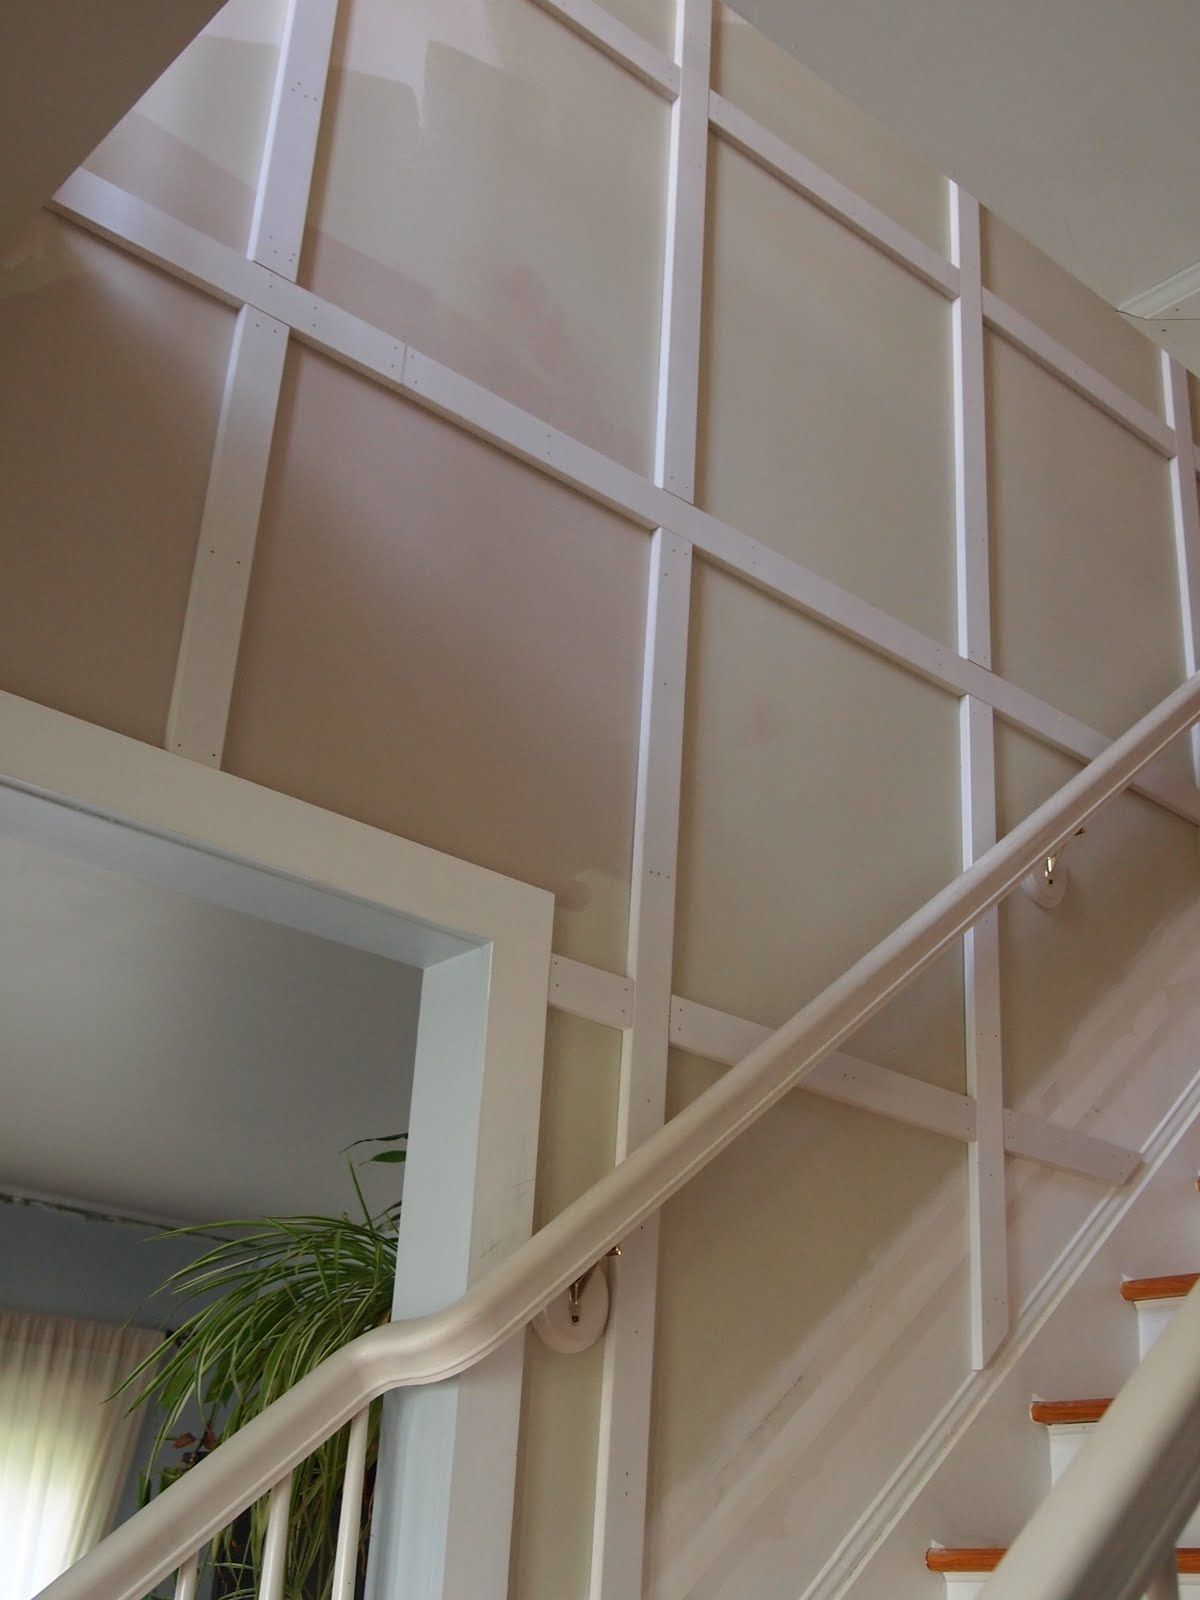 Ordinaire Hallway Molding Ideas | Stair Molding Ideas  Http://www.thequaintcottage.net/2011/07/update On .